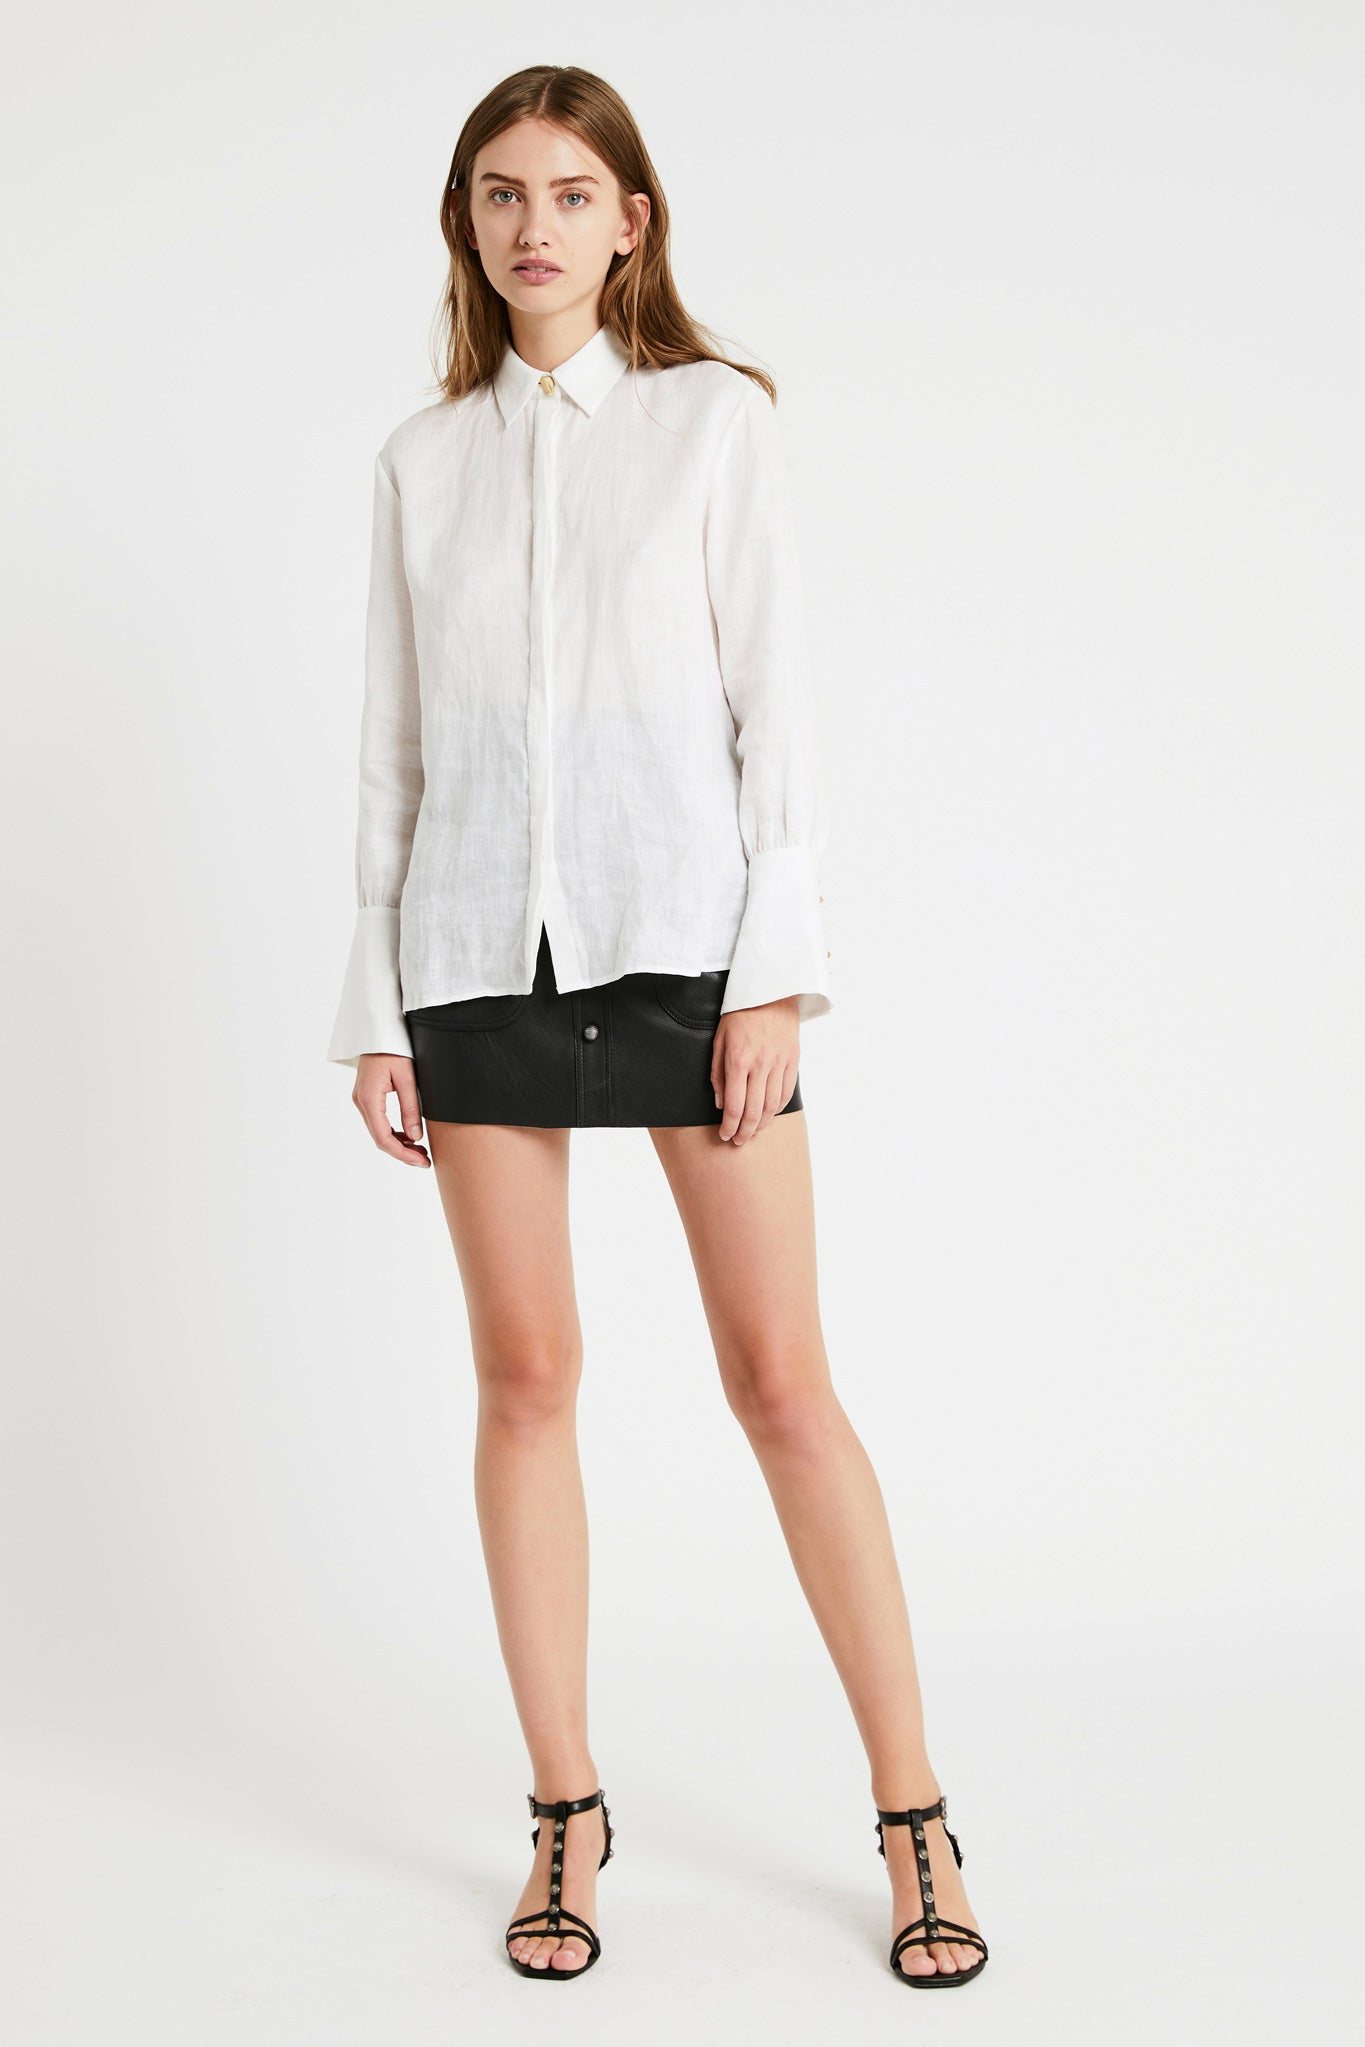 Aje Linen Shirt Outfit View